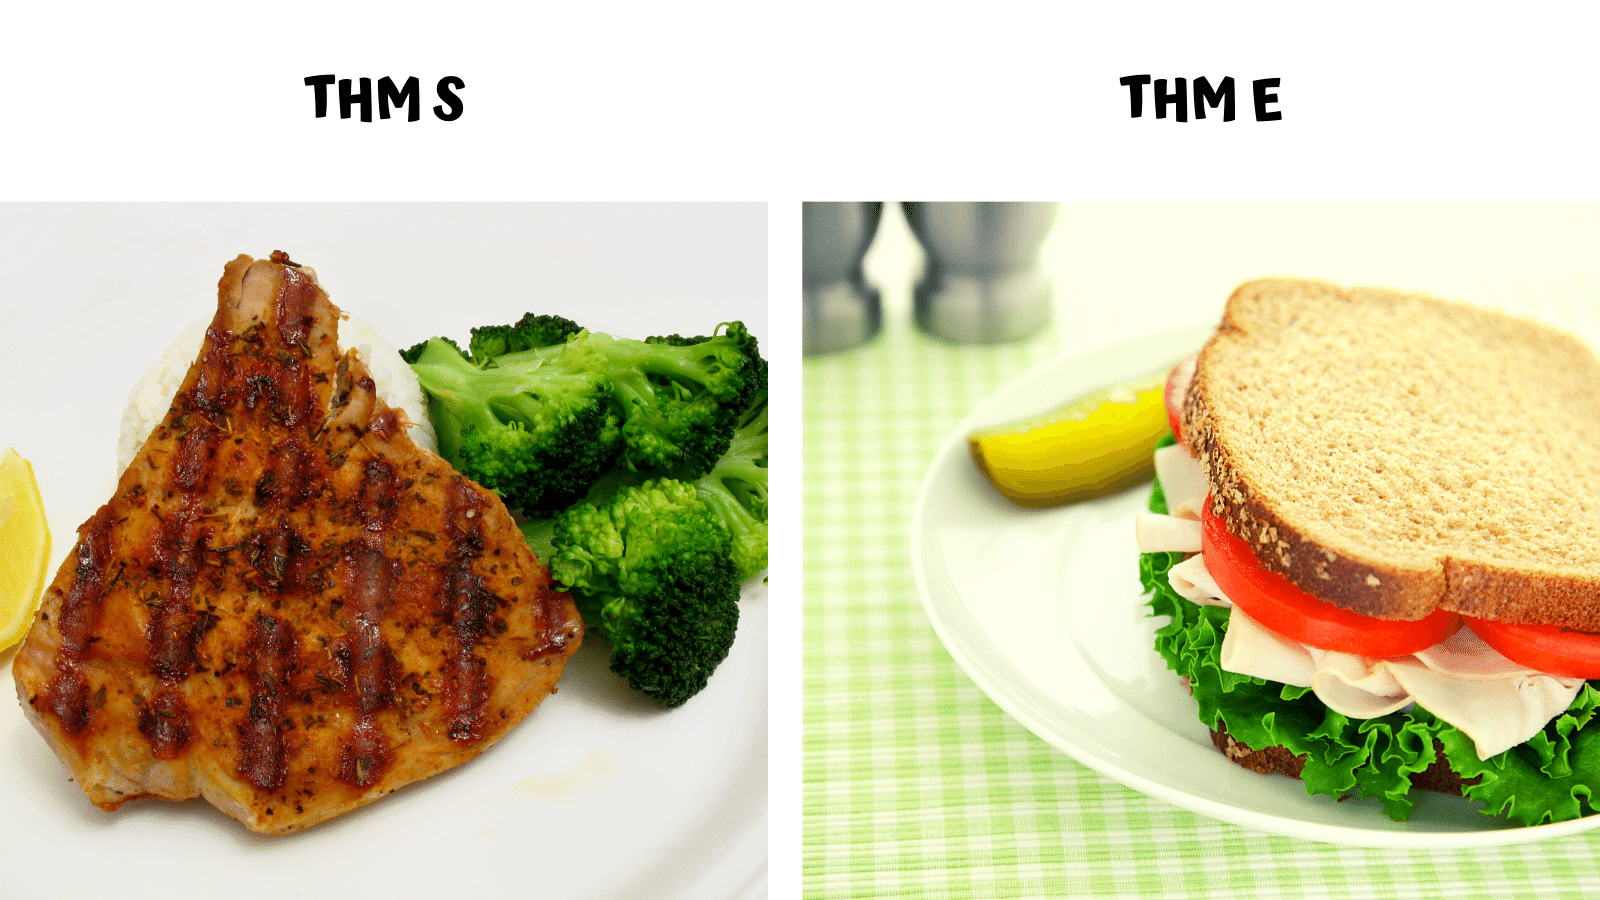 THM S & THM E Meal Examples